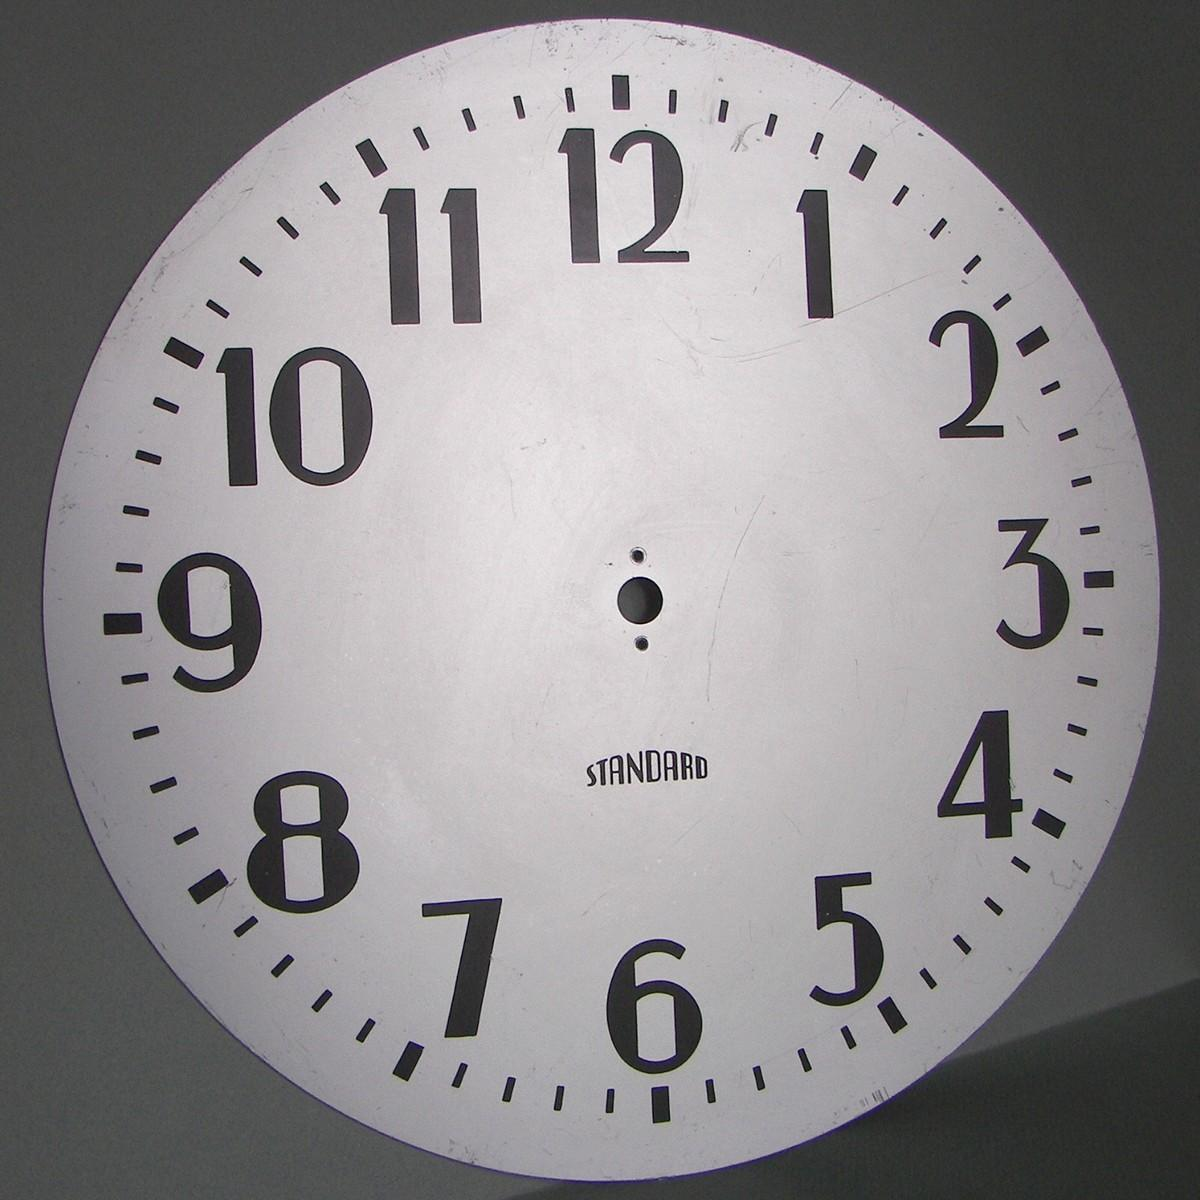 Standard Electric Time Co 12 Art Deco Wall Clock Face